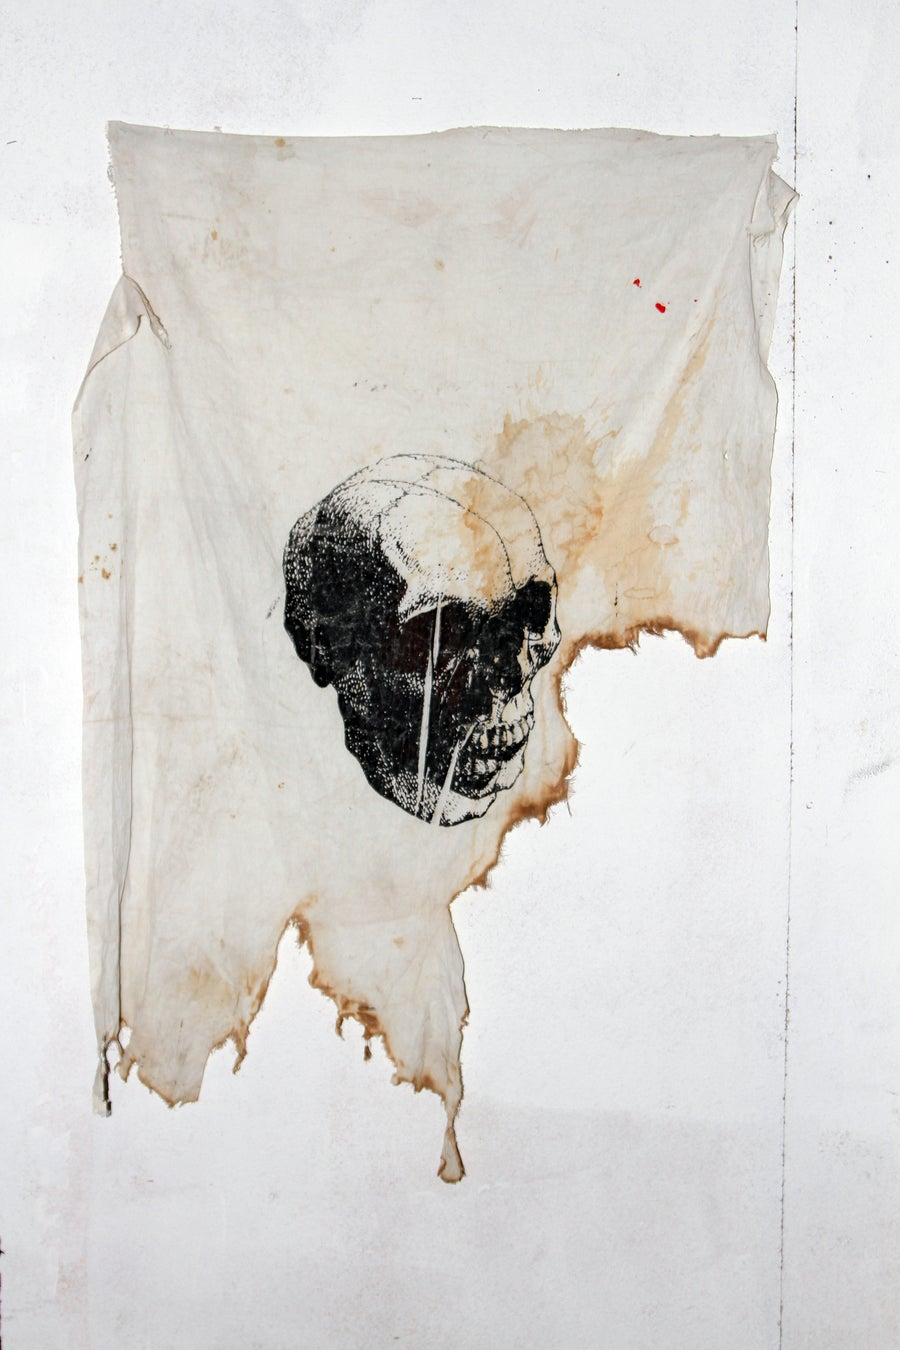 Image of BURNED FLAG WITH SKULL BY ION RAKHMATULINA